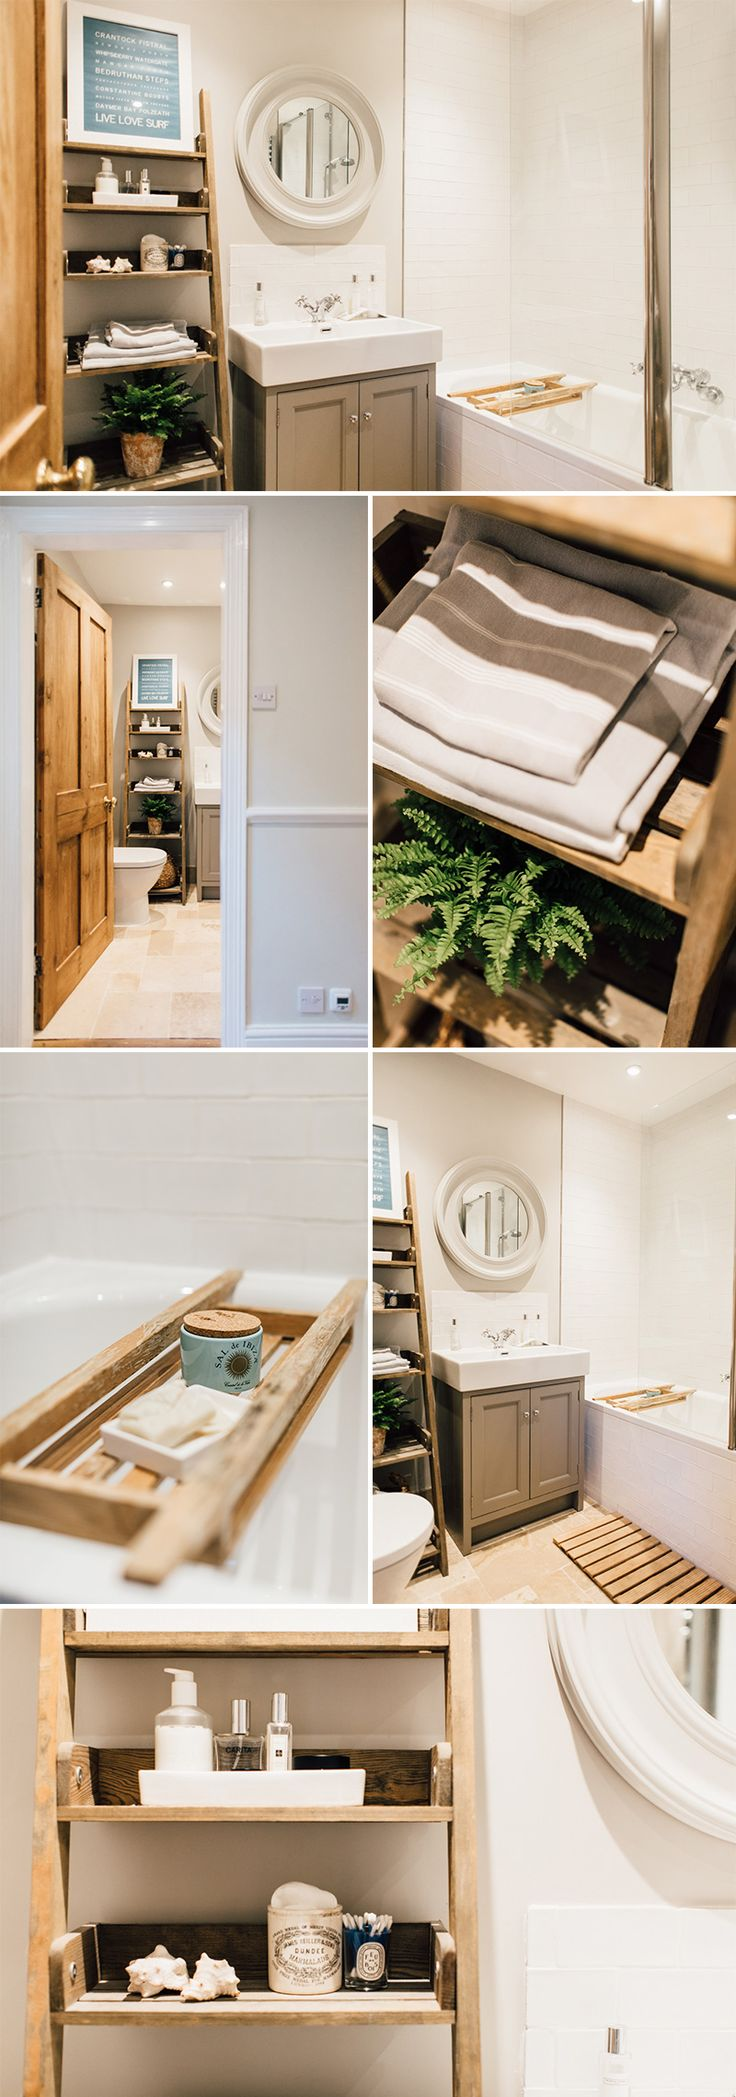 a modern country bathroom | Ladder shelf | how to style a ladder shelf | topps tiles inspiration | rope rhodes sink | White company mirror | ocean inspired bathroom | laura ashley tiles | bath tidy